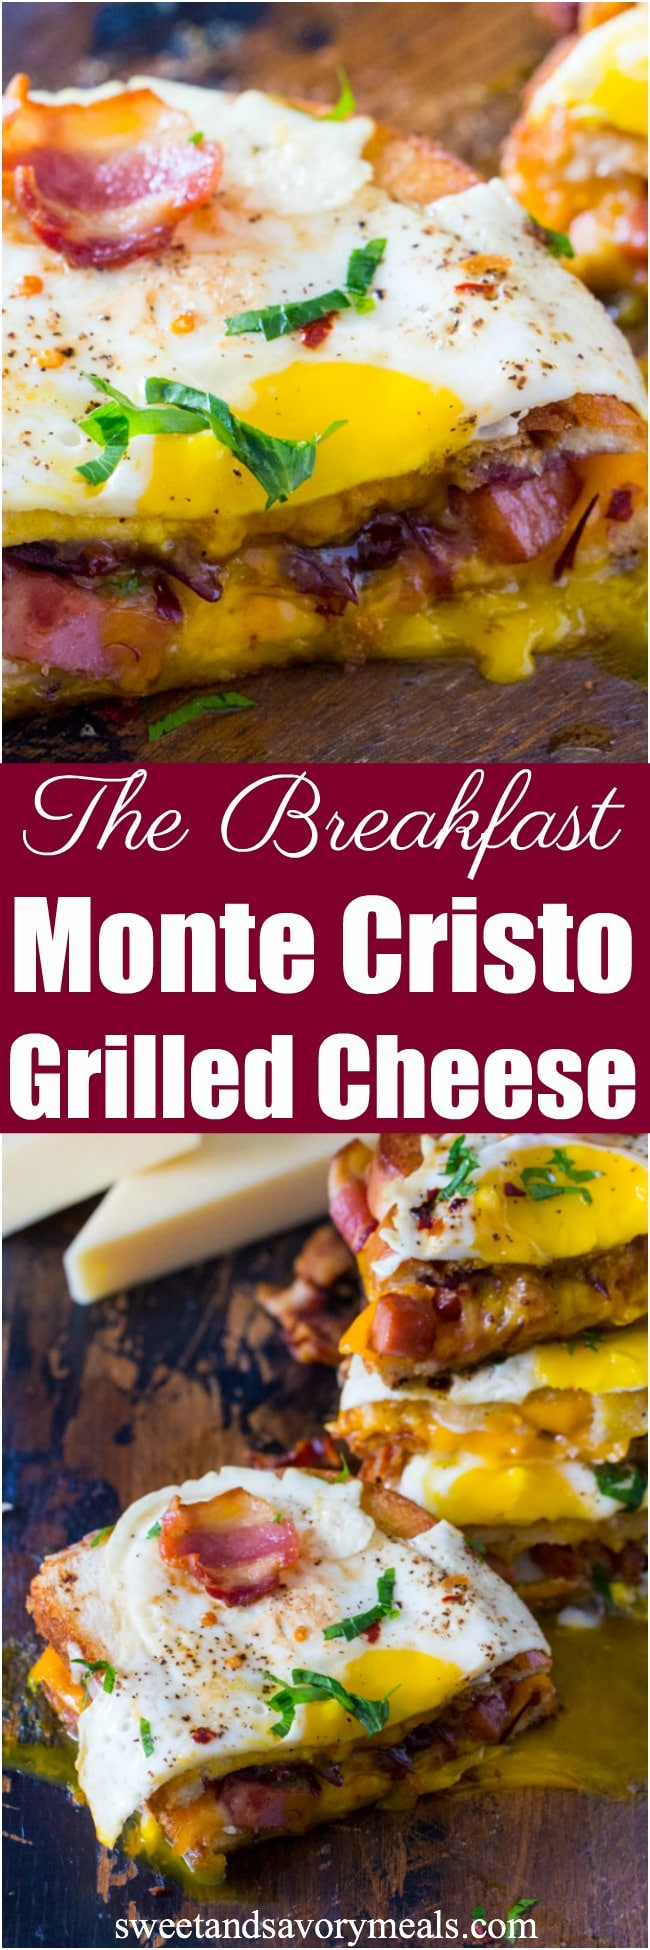 The best Monte Cristo Grilled Cheese sandwiches are deliciously stuffed with fried ham, bacon, cheese and topped with a perfect runny egg.